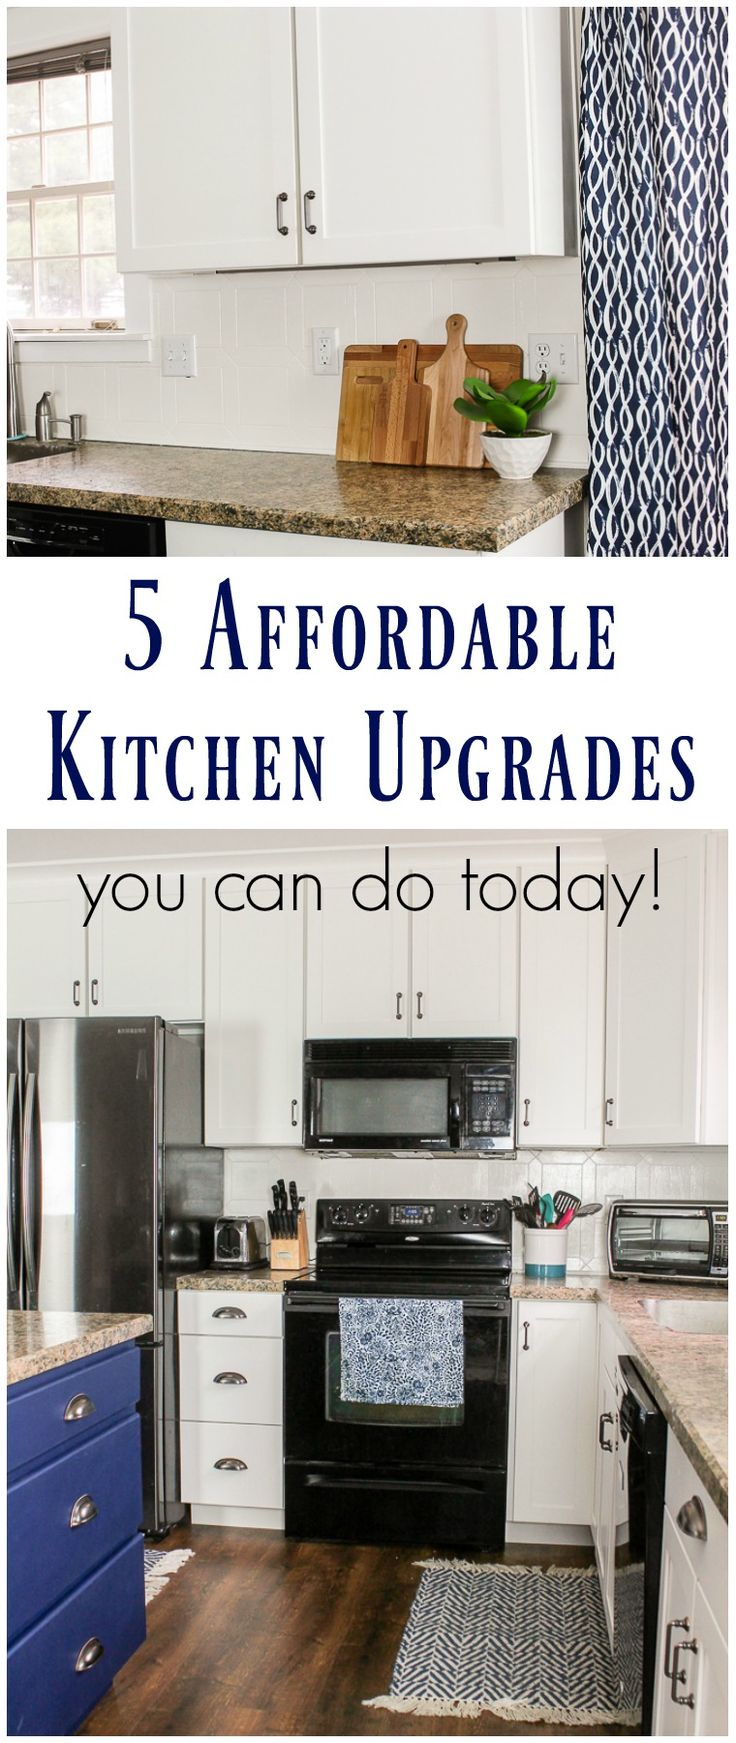 Kitchen Upgrades 17 Best Images About Home Decor Kitchens On Pinterest Farmhouse